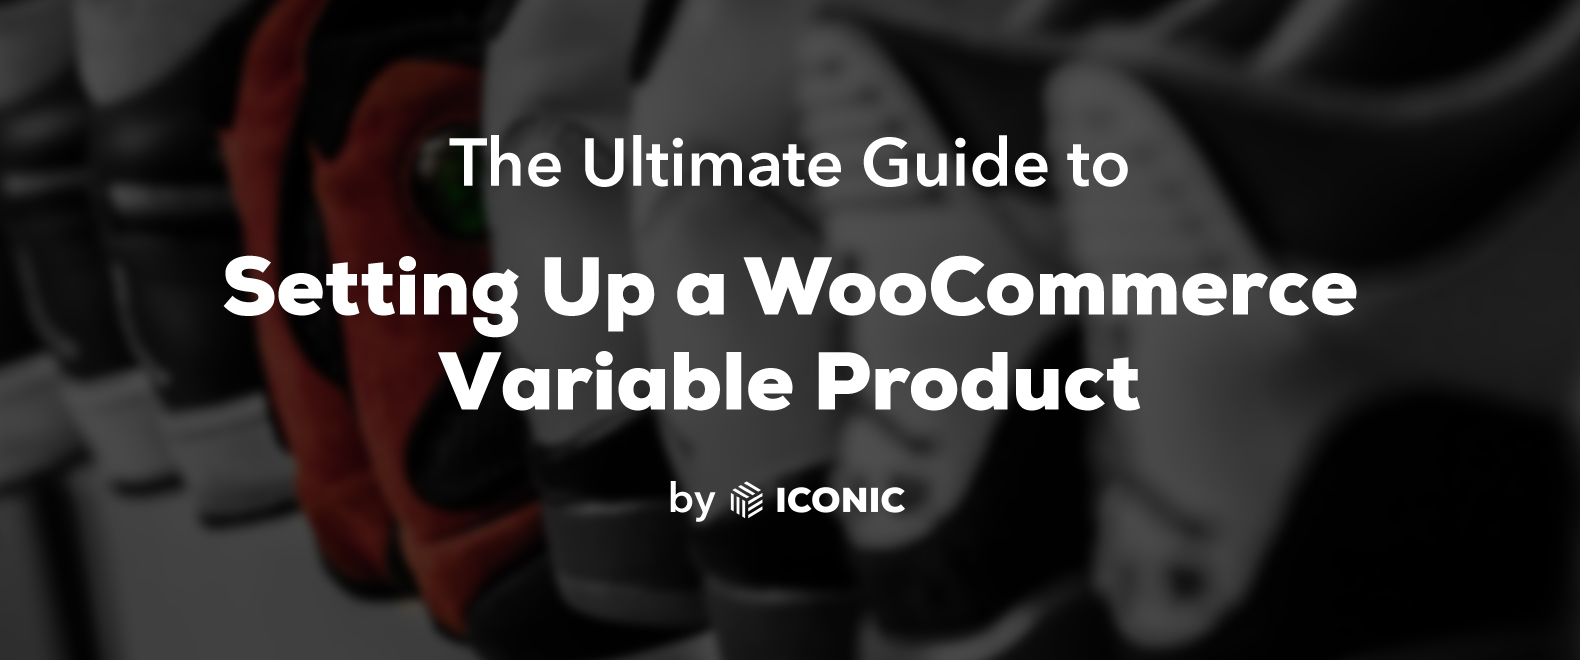 WooCommerce Variable Product